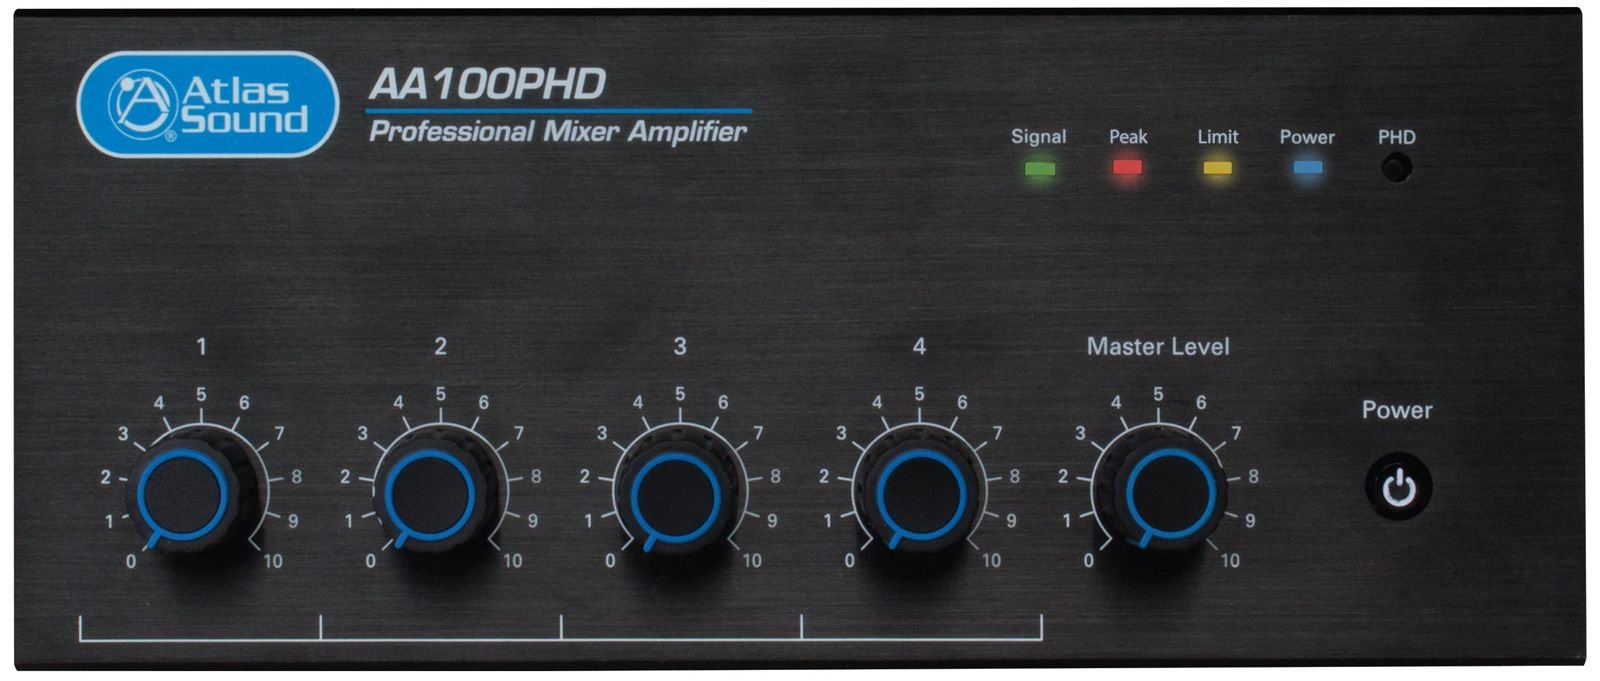 4-Input, 100W Mixer Amplifier with Automatic System Test (PHD)